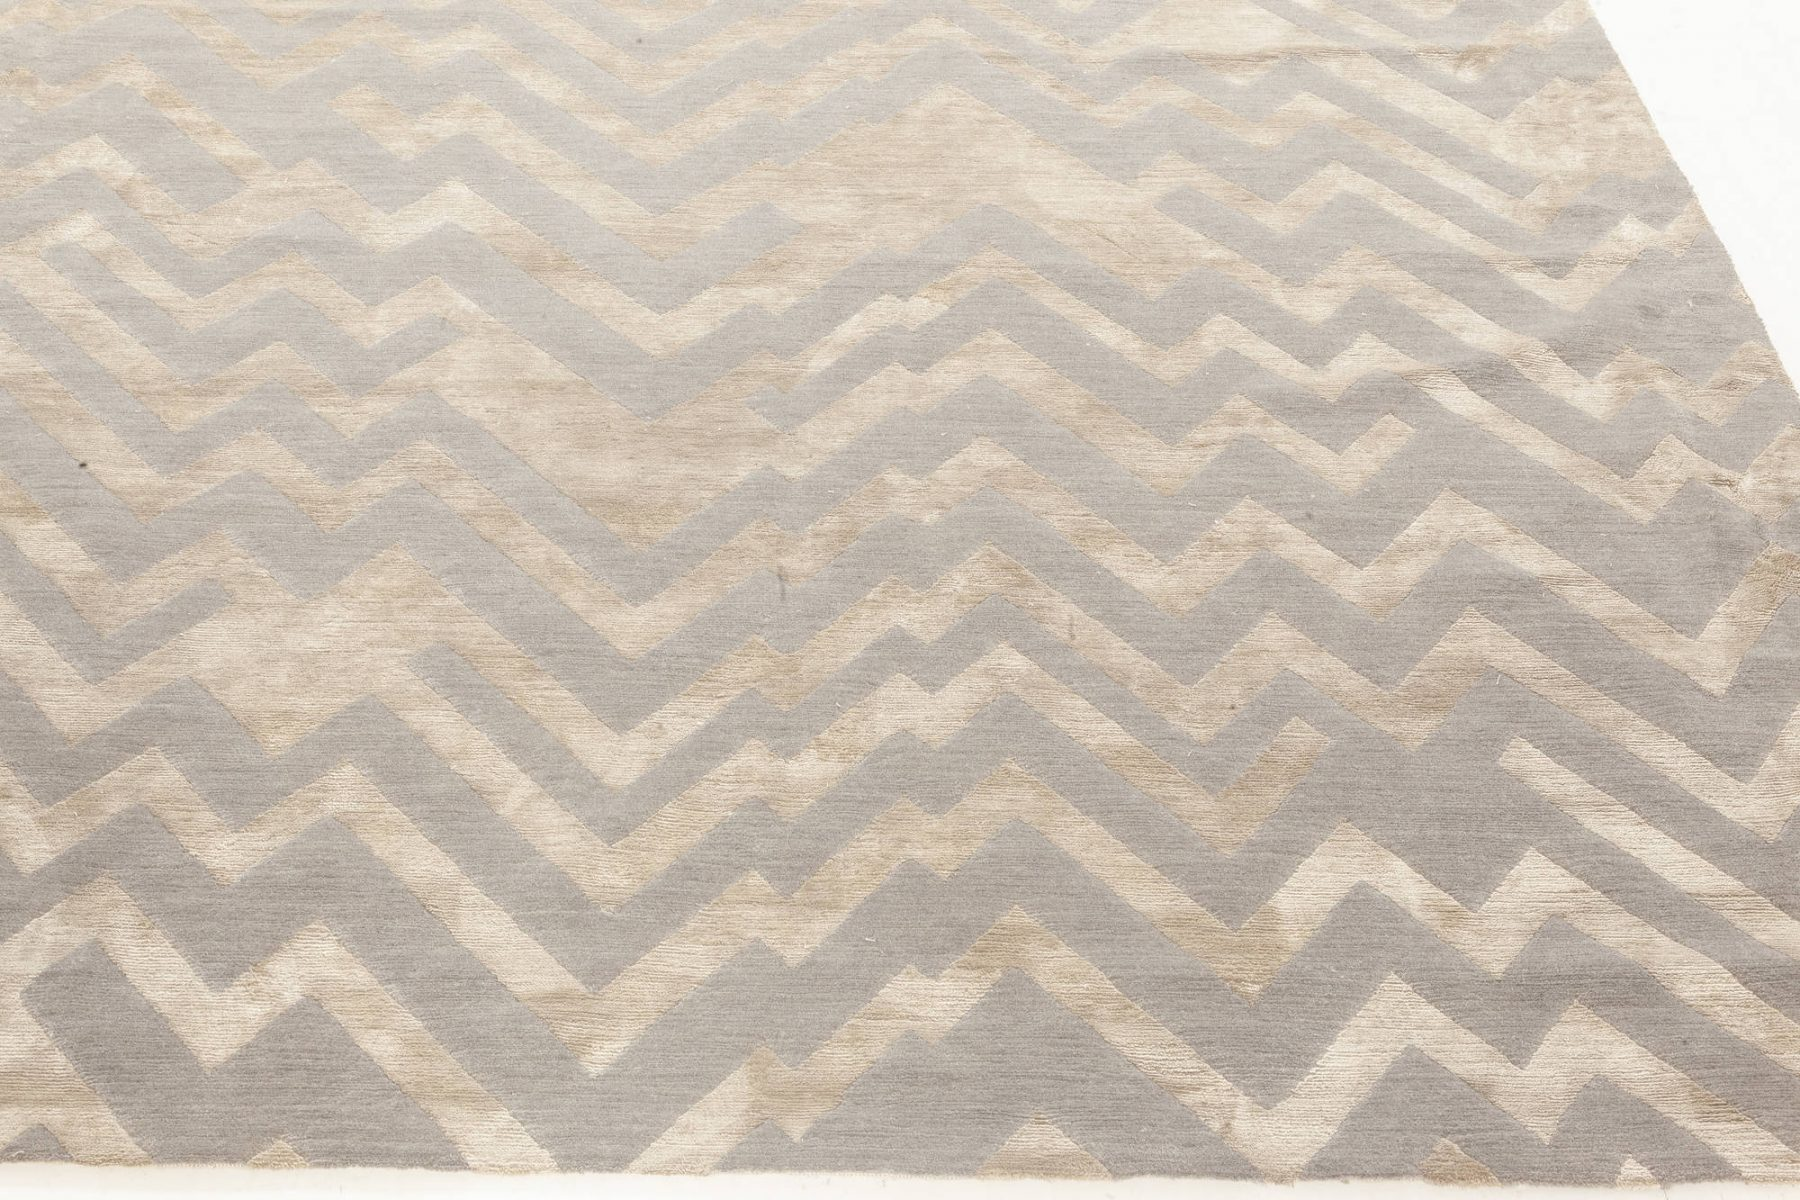 Rocky Peaks Silk and Wool Rug in Beige and Grey N12066